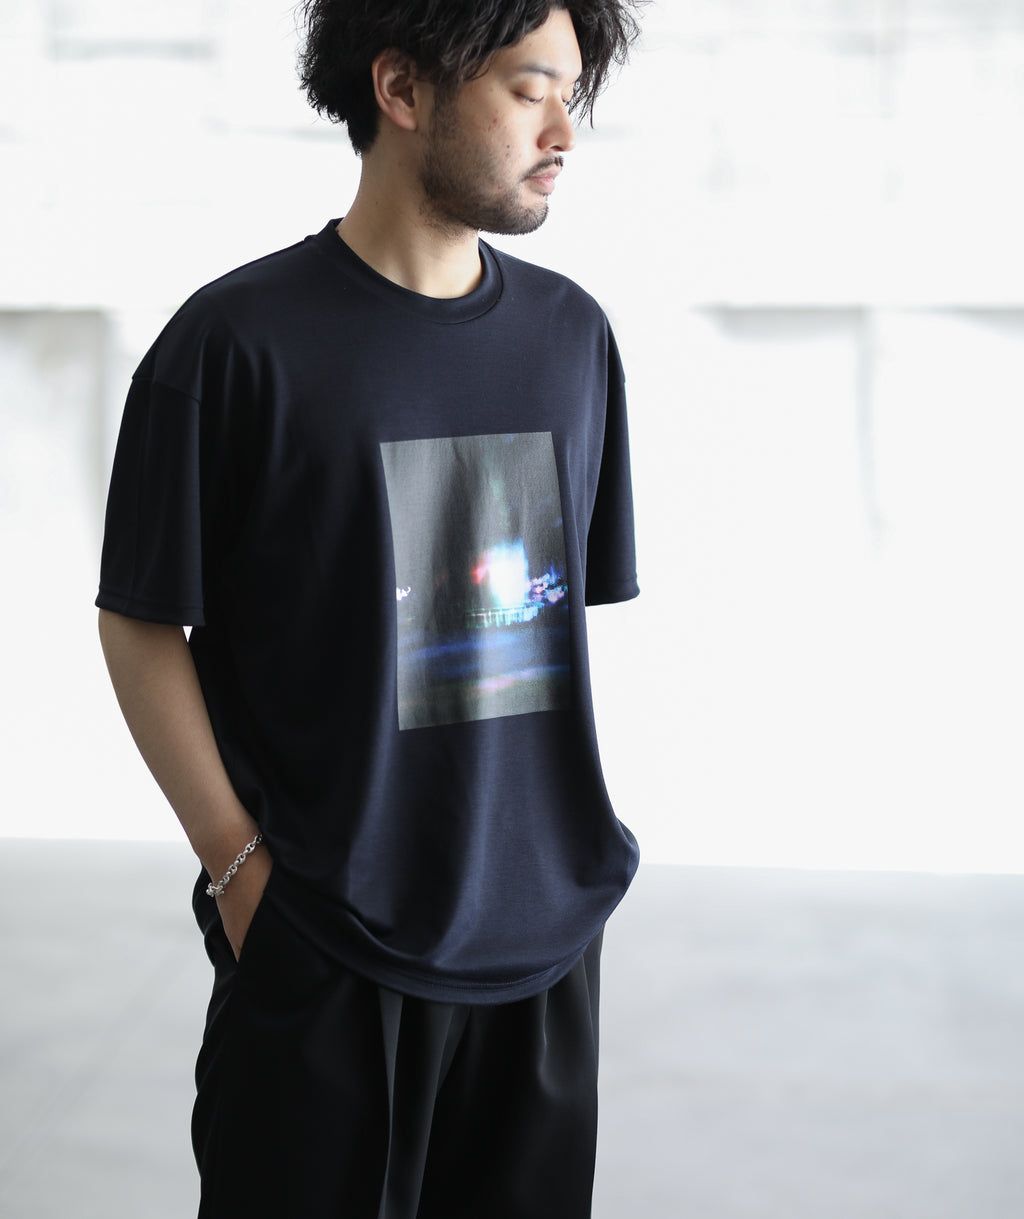 stein シュタイン PRINT TEE - PORTRAIT - DARK NAVY ST.256 session